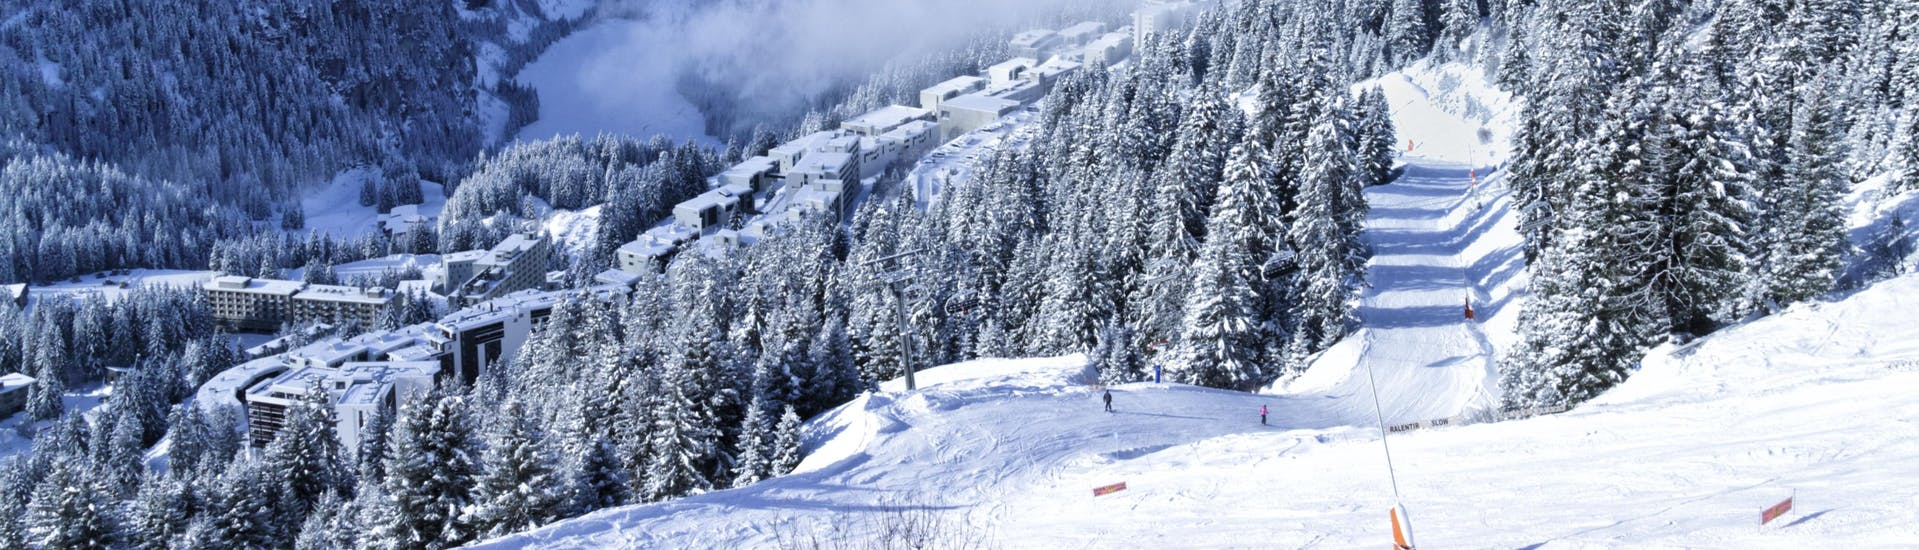 An image of the white winter landscape encountered in the Grand Massif ski region where local ski schools take their students for their ski lessons.